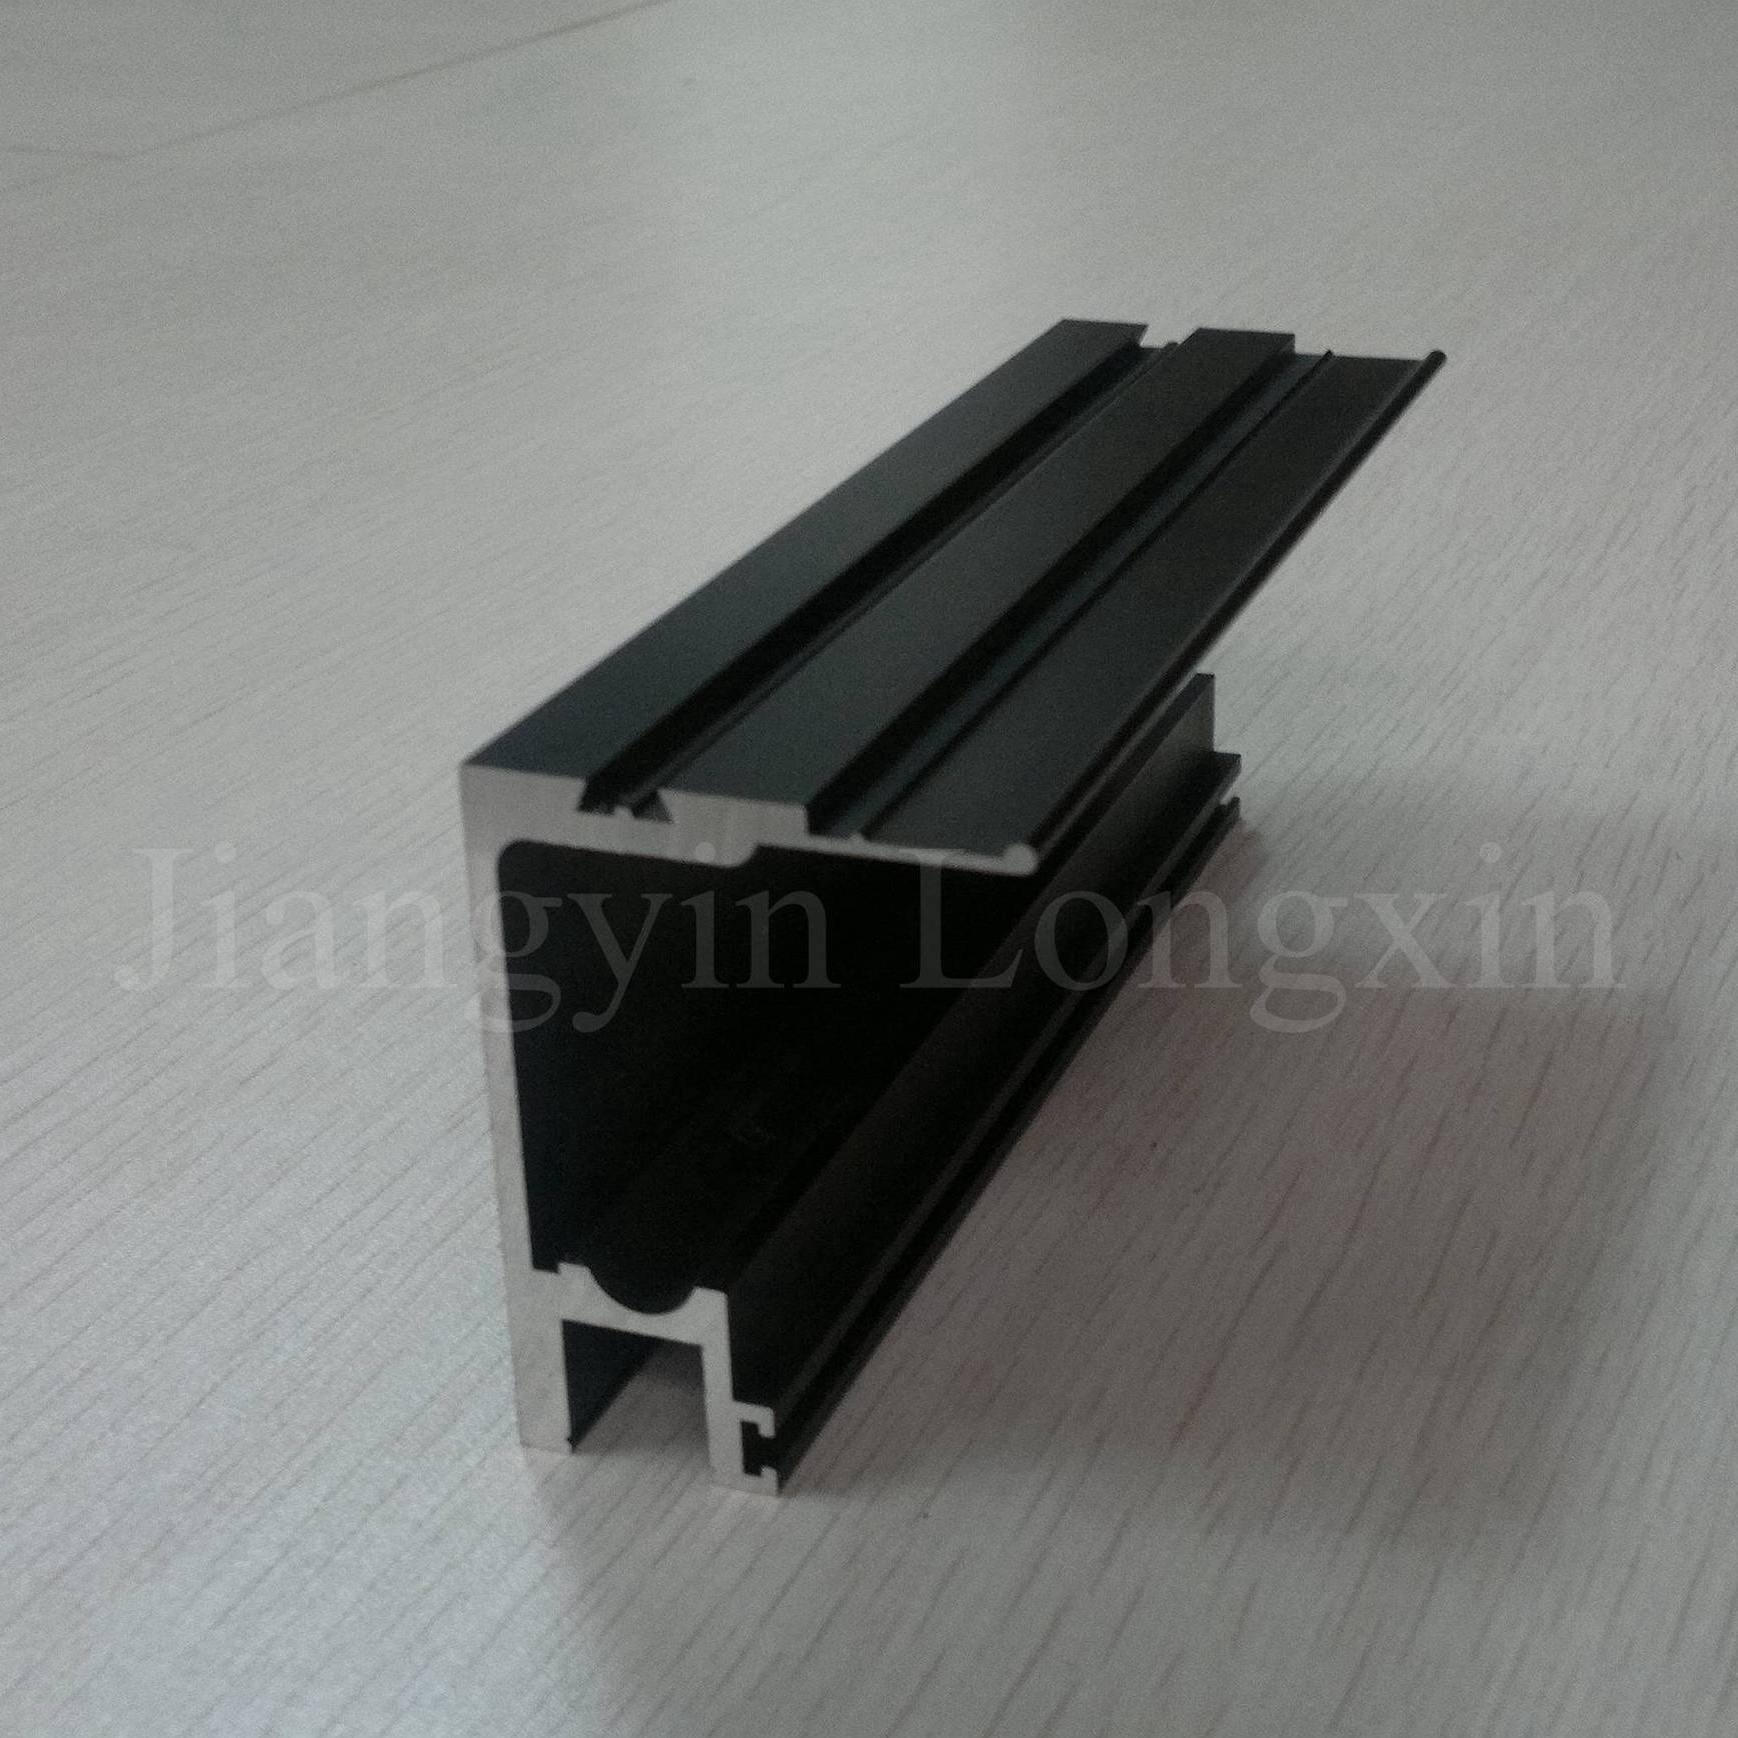 Black Anodized Aluminium Profile for Windows